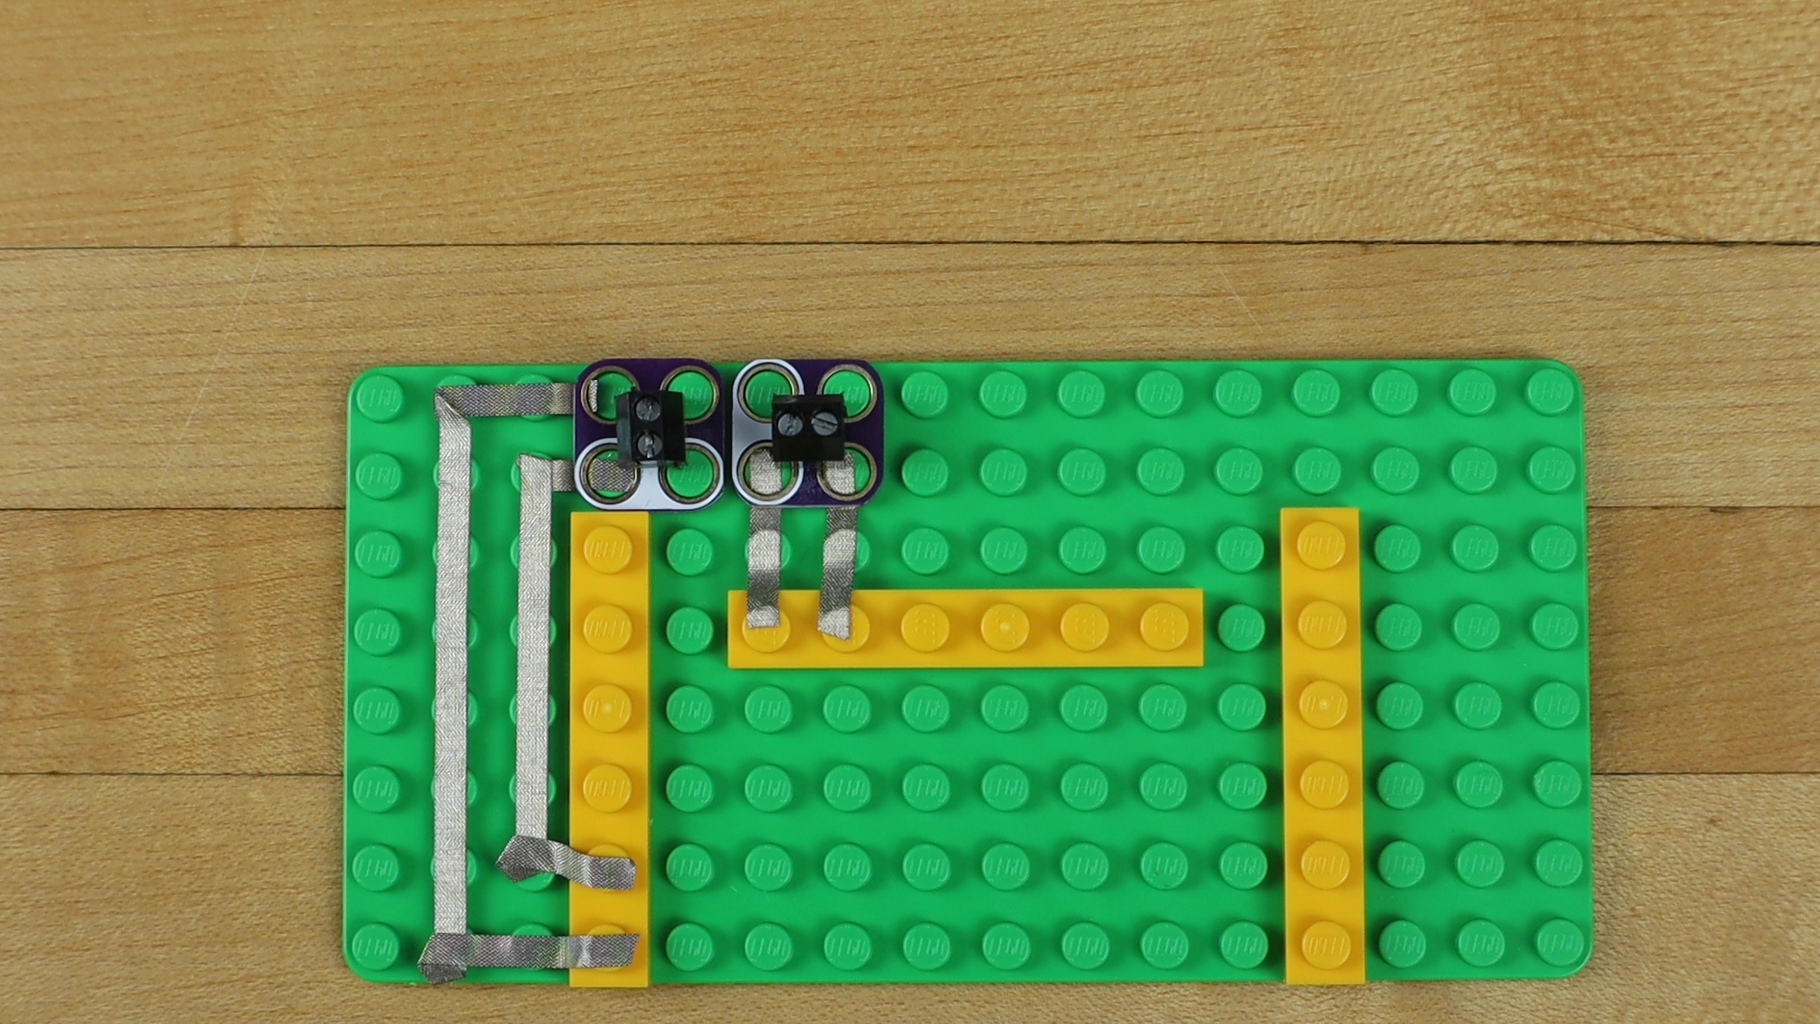 Assemble Your Circuit Board